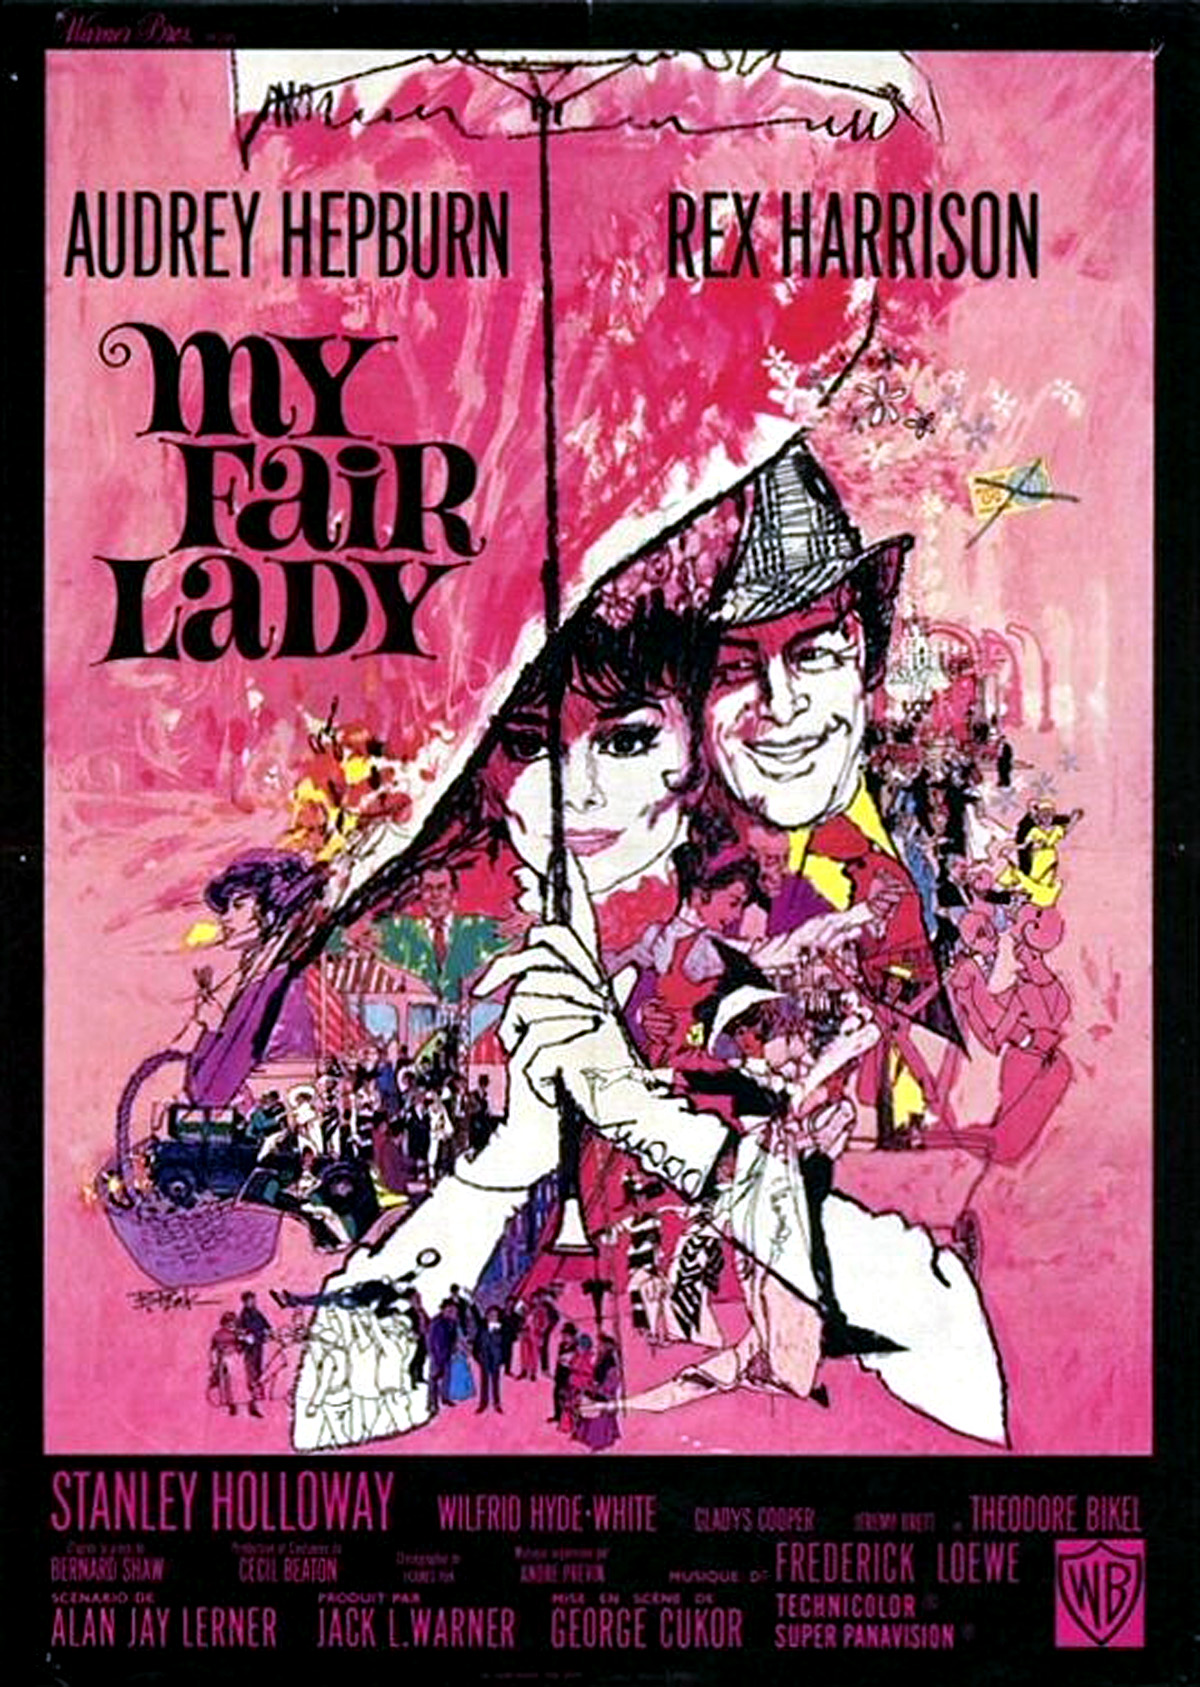 audrey hepburn my fair lady 1964 starring rex harrison dvdbash. Black Bedroom Furniture Sets. Home Design Ideas